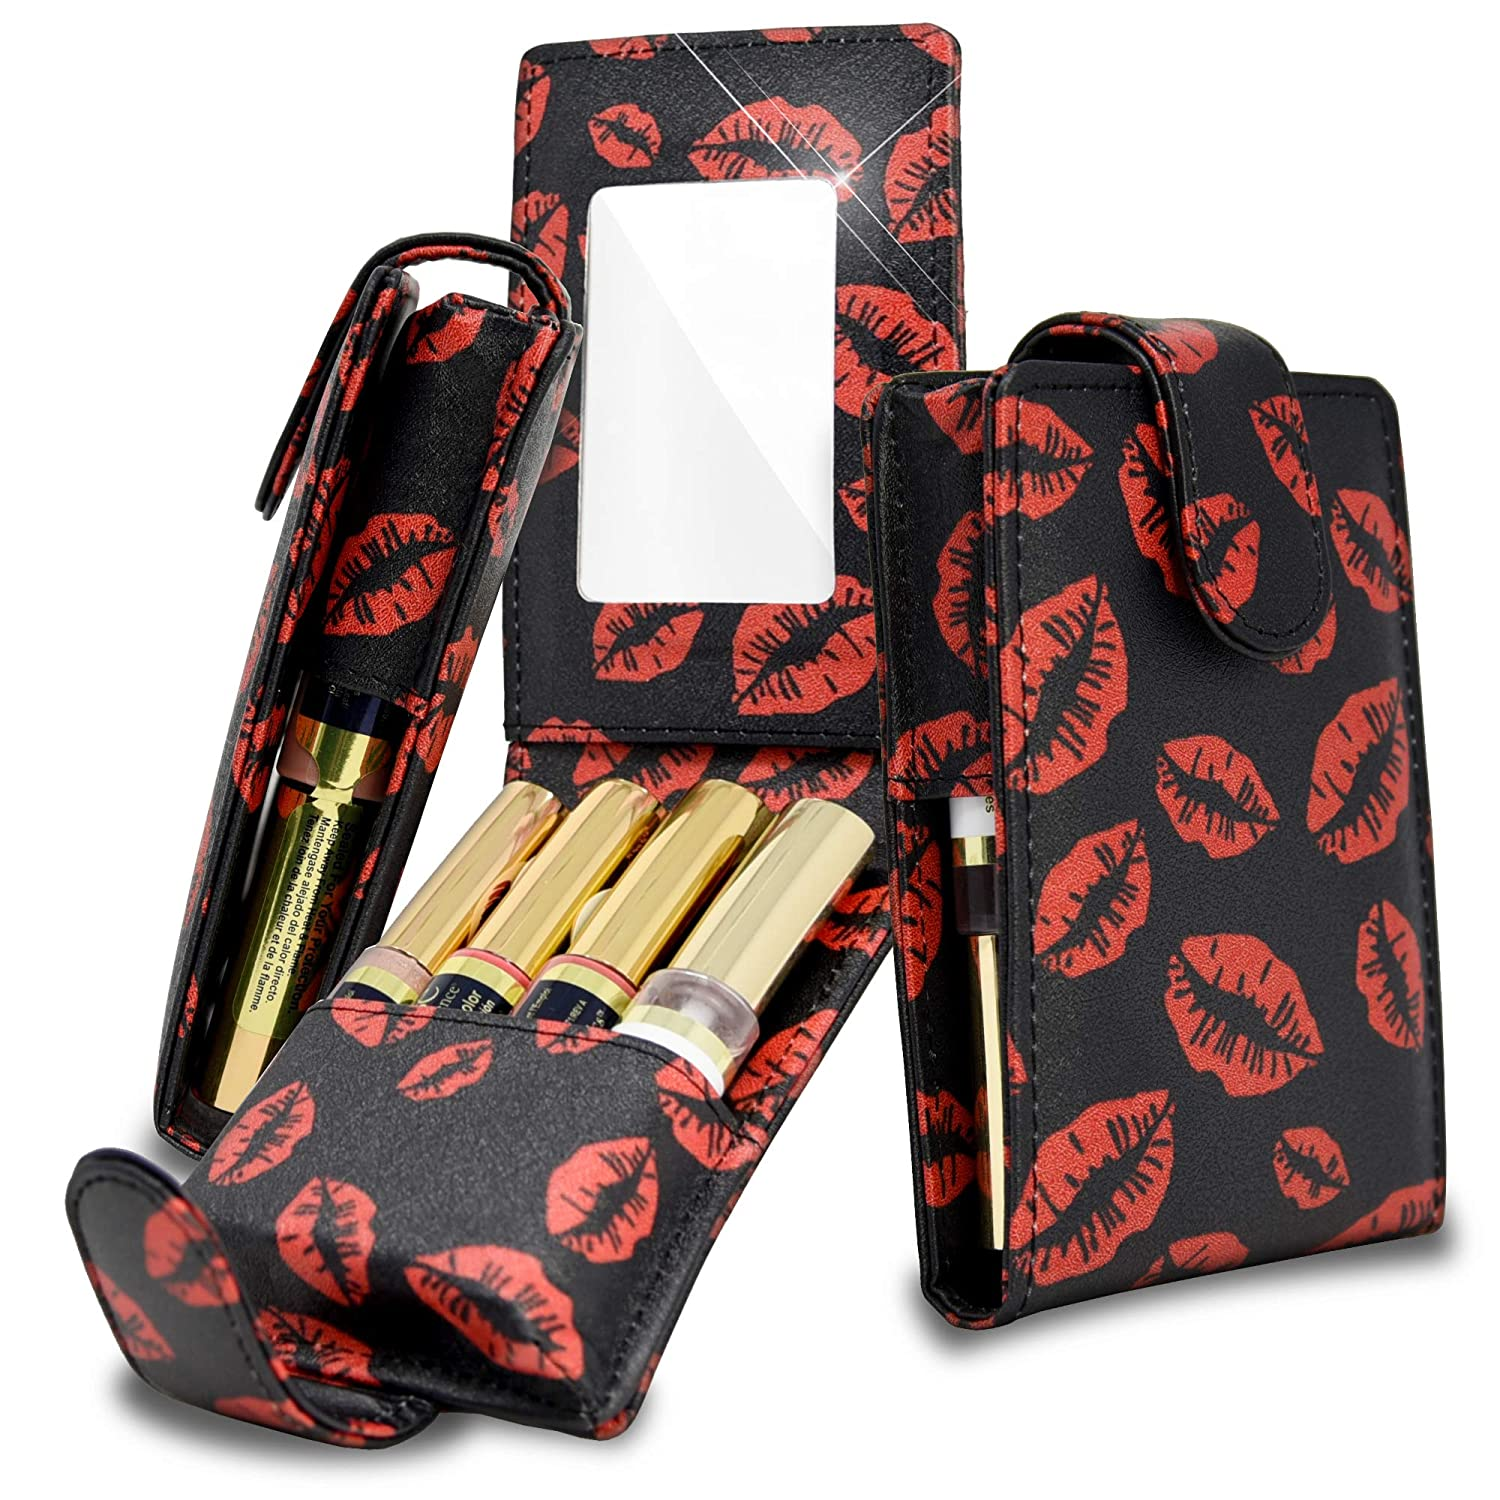 Celljoy Case for LipSense, Younique, Kylie Cosmetics, Liquid Lipsticks and Lip Gloss with Mirror - Fits 4 Tubes Mirror Card Slot - Travel Purse Storage (Black Red Lips)